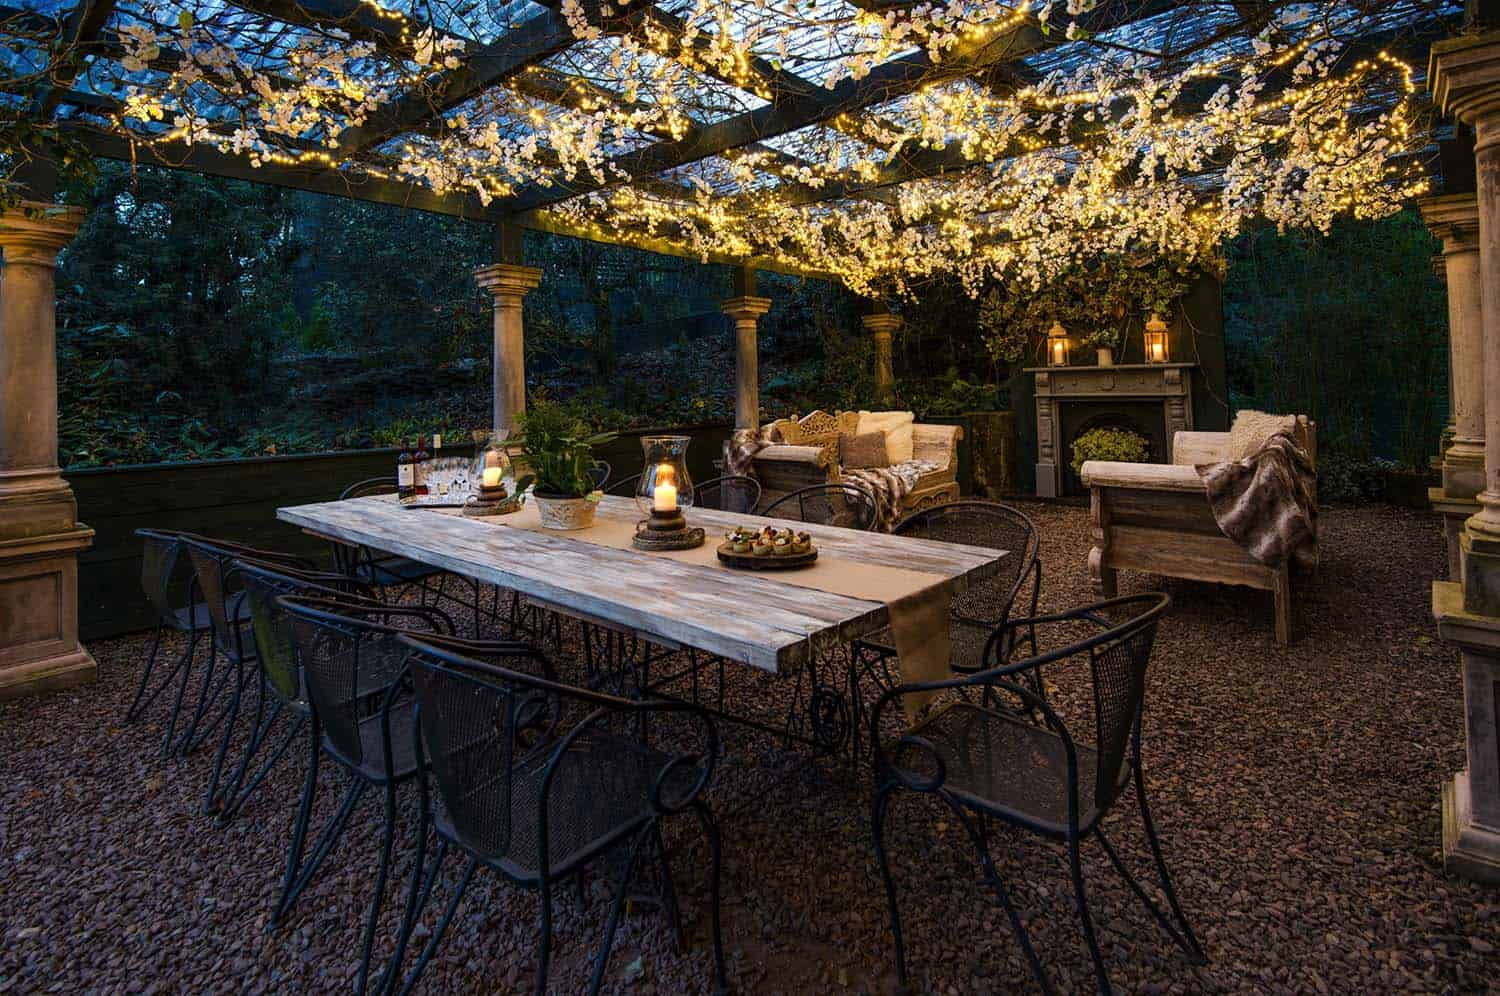 35 Brilliant and inspiring patio ideas for outdoor living ... on Small Backyard Entertainment Area Ideas id=99797